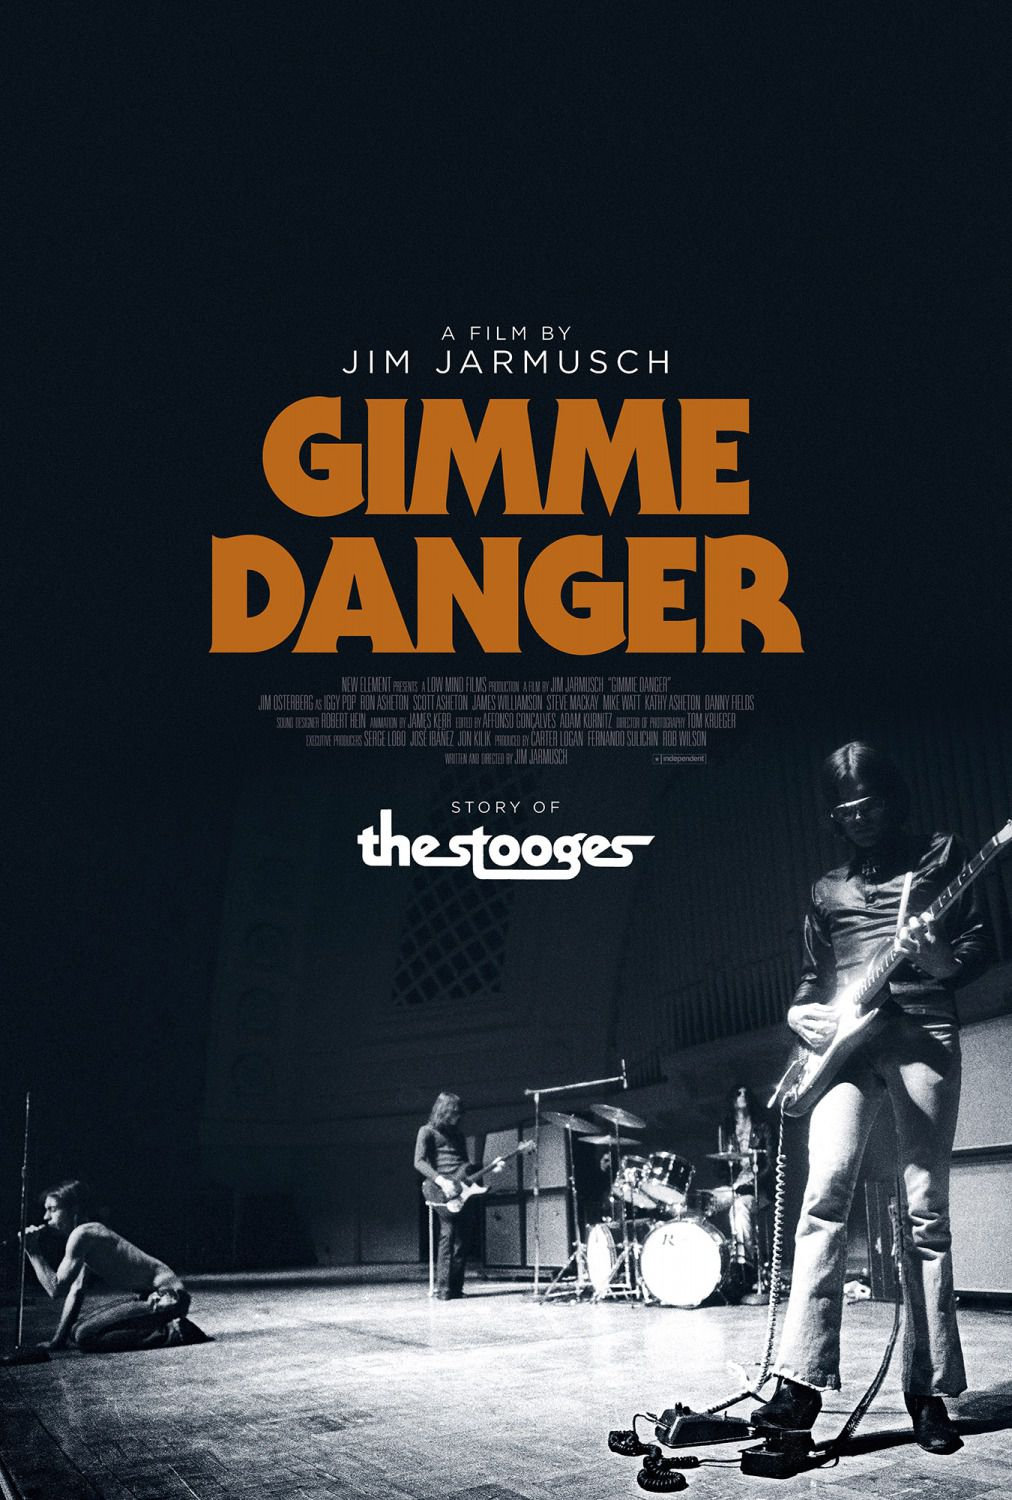 Gimme Danger - the Strooges - film poster